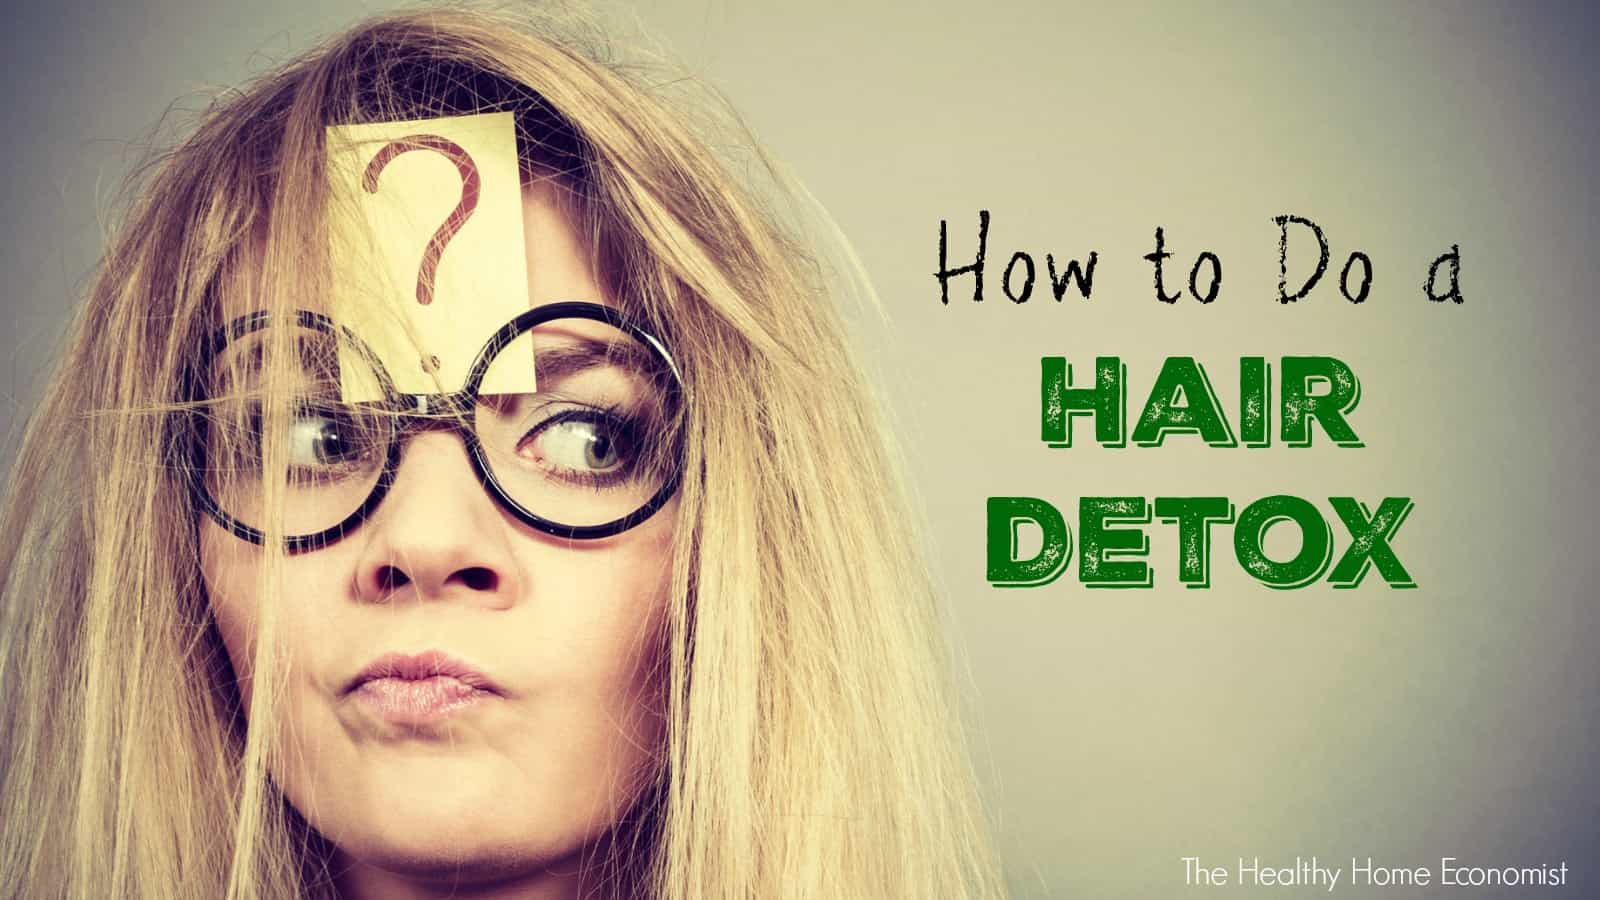 Detox your hair: Methods to stay natural, scalp care